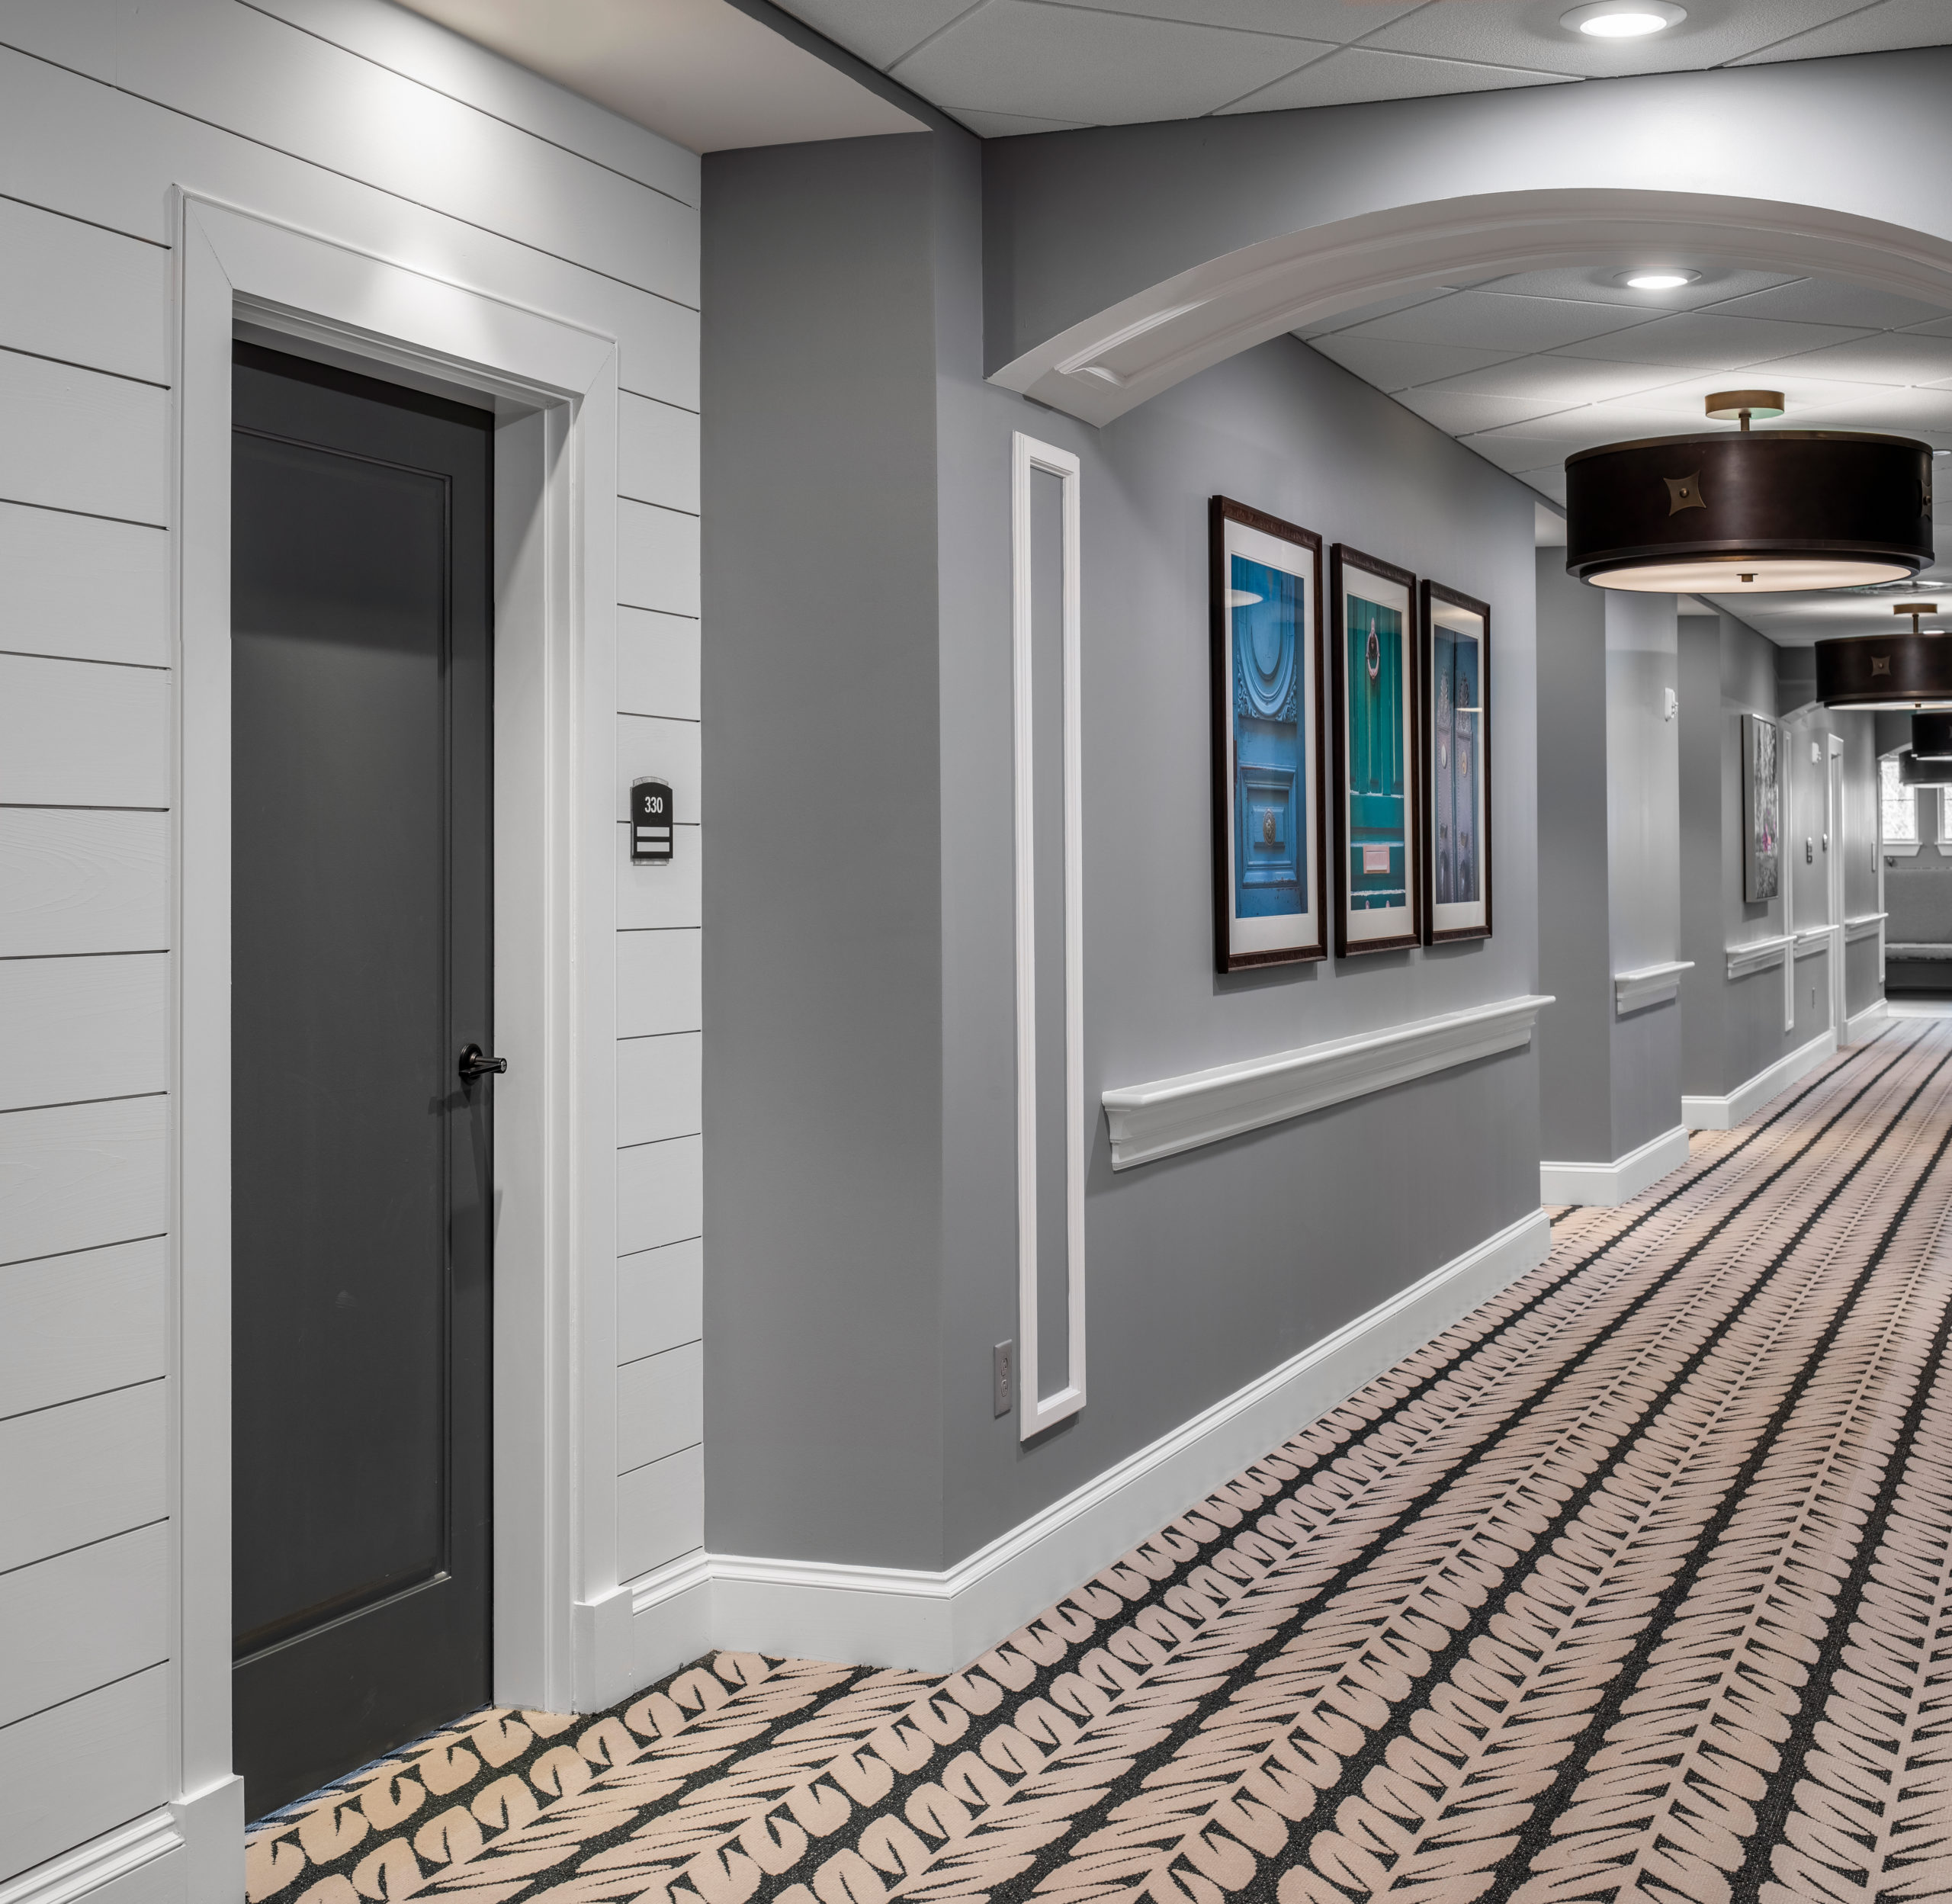 Longleaf hallway with white walls and residents' blue doors at left, gray walls to right of door